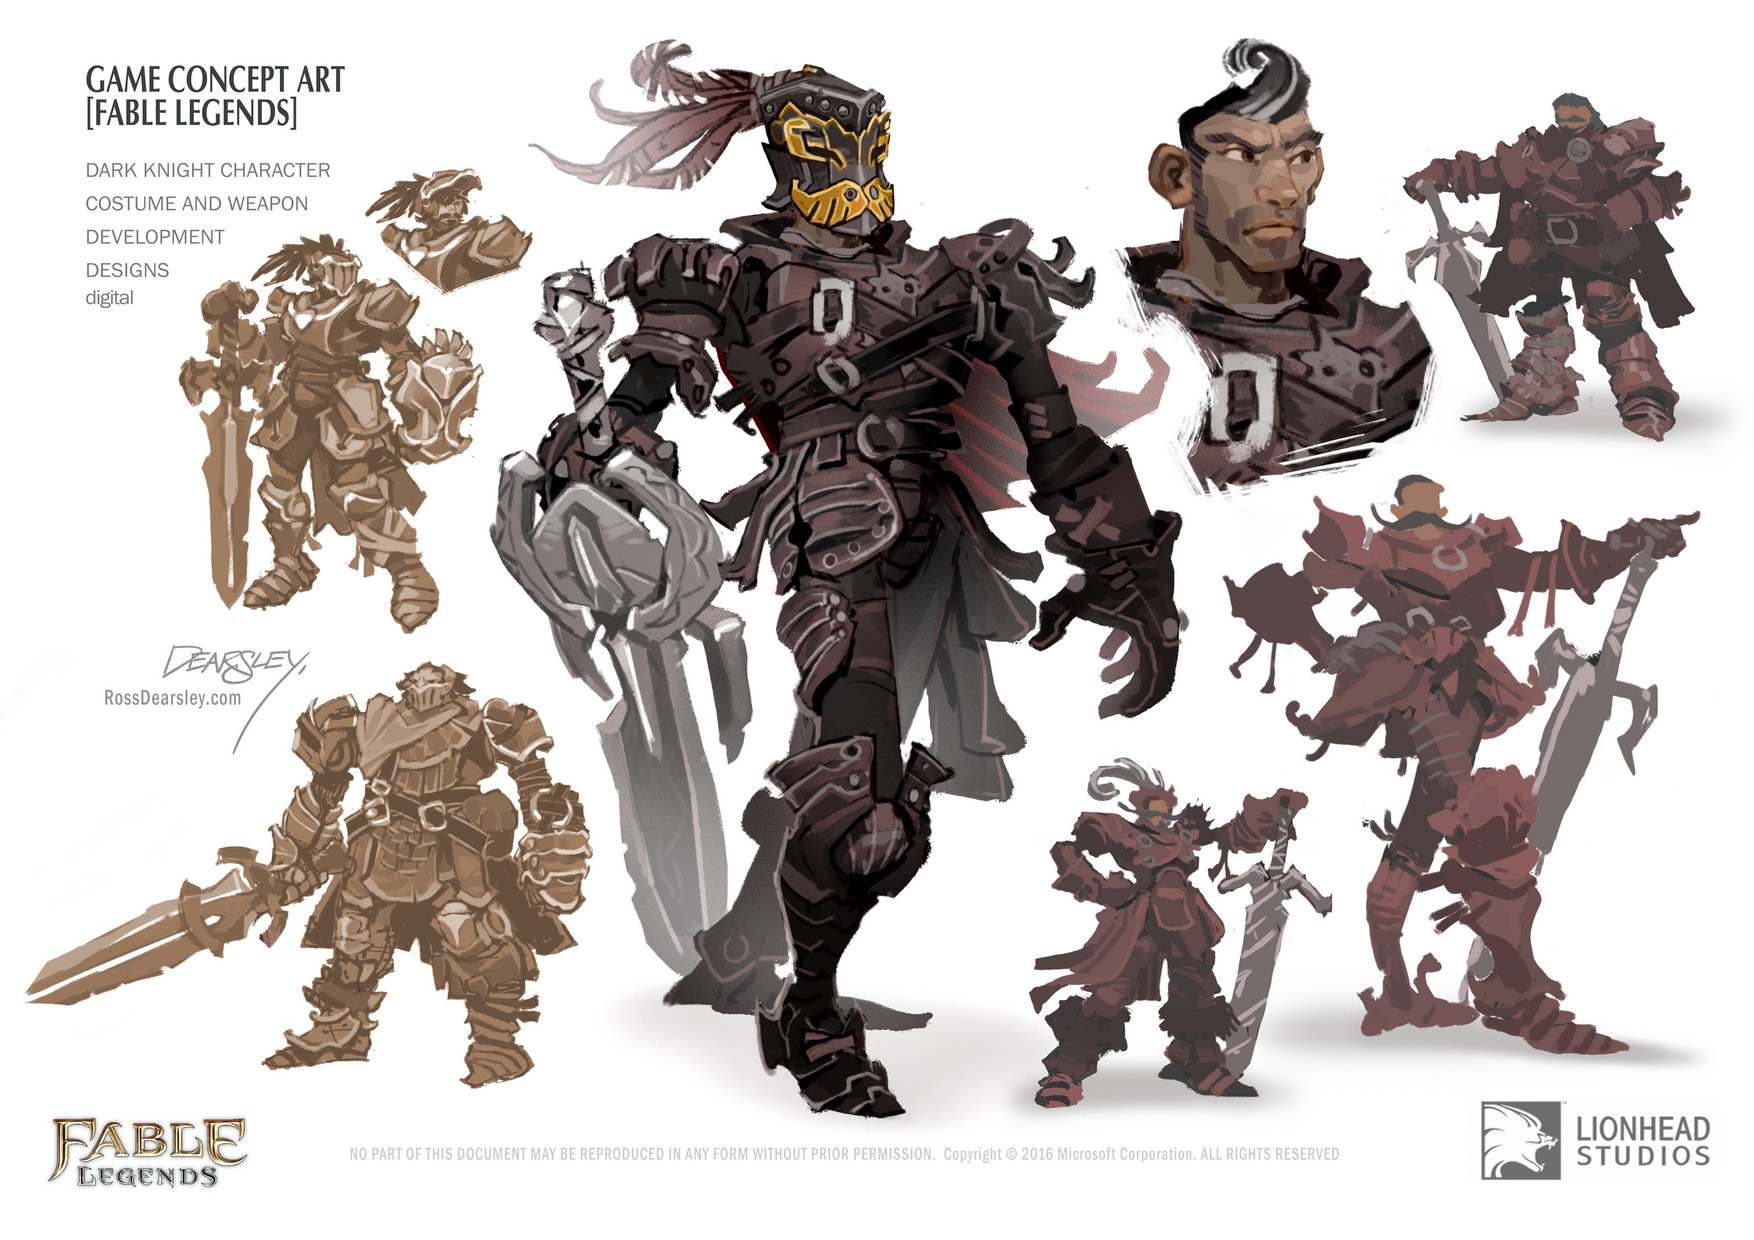 ArtStation Fable Legends Dark Knight Character Ross Dearsley - Character design document